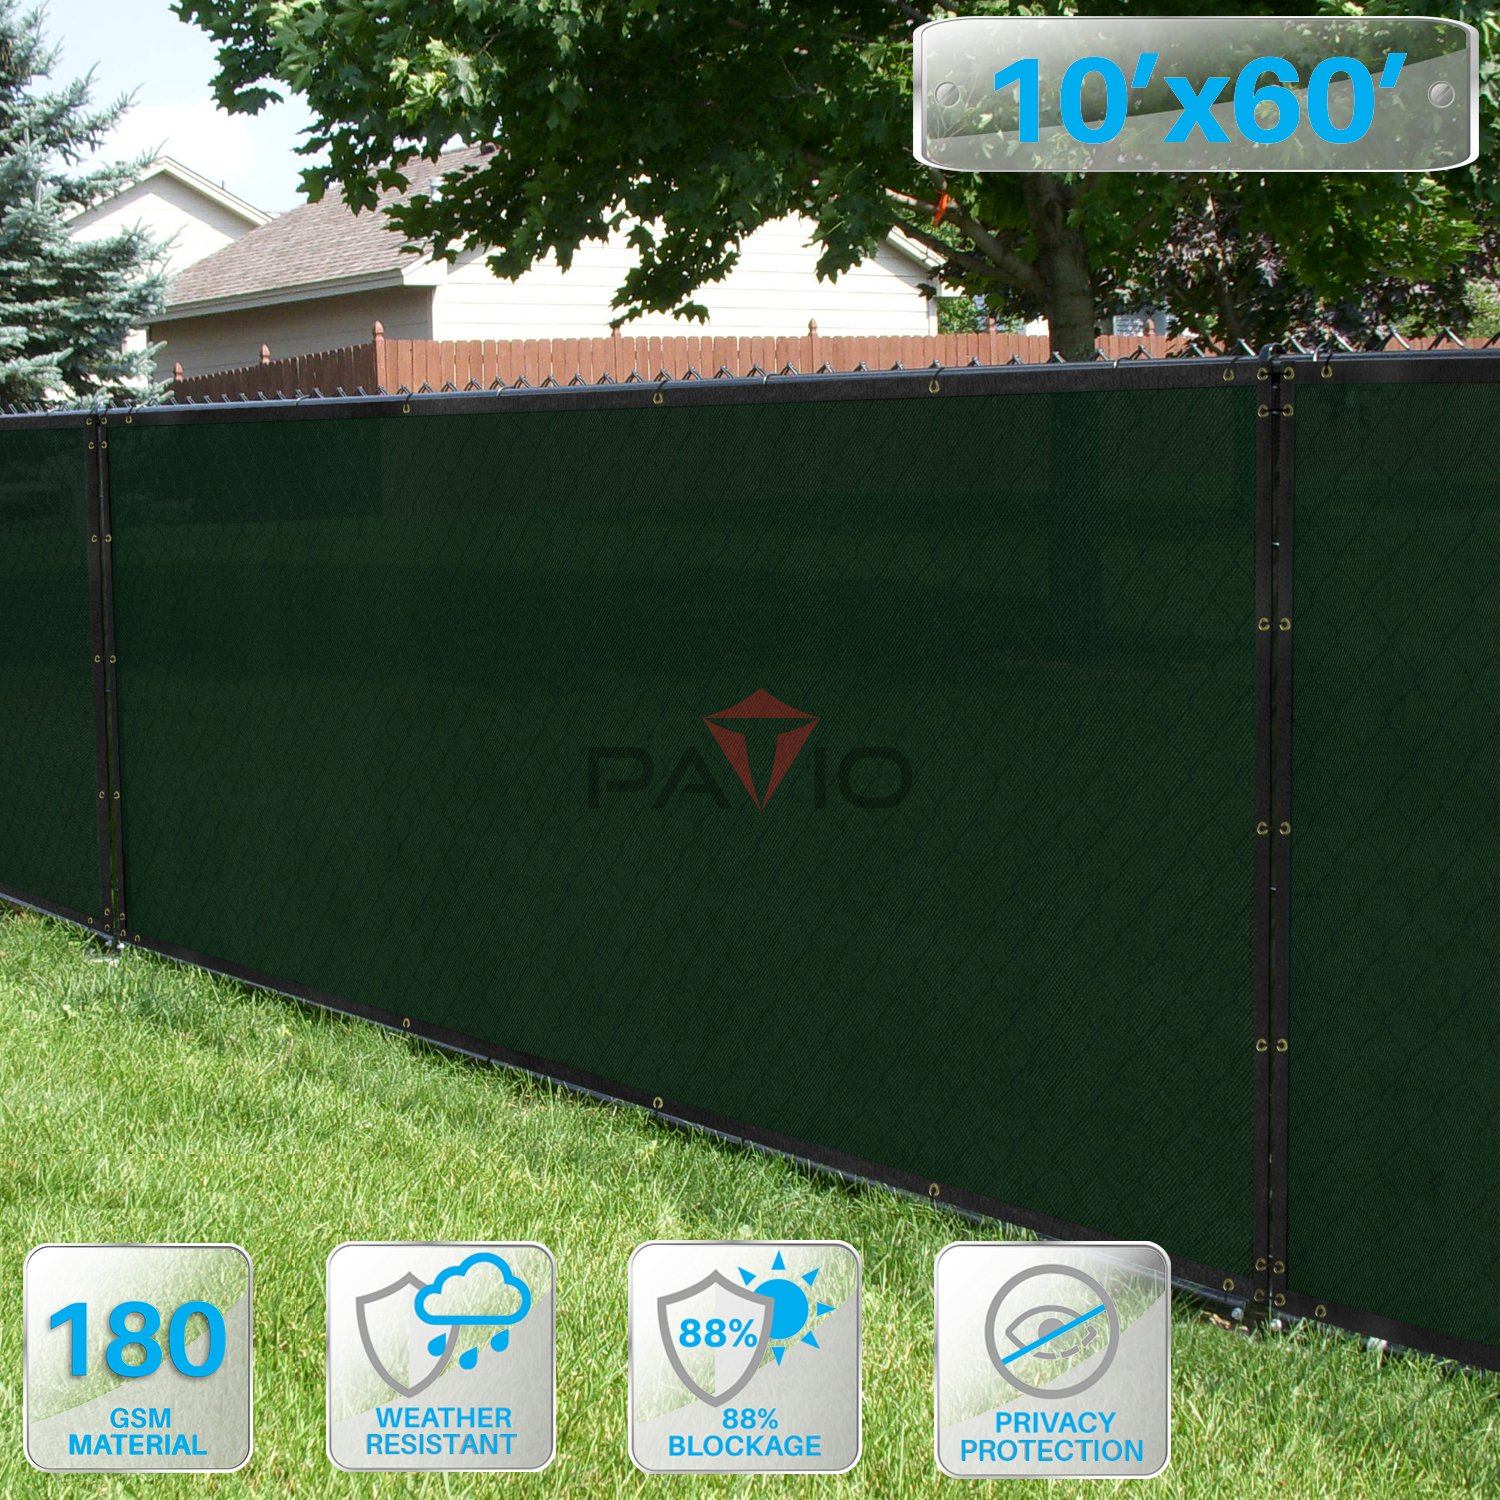 Patio Fence Privacy Screen 10' x 60', Pergola Shade Cover Canopy Sun Block, Heavy Duty Fence Privacy Netting, Commercial Grade Privacy Fencing, 180 GSM, 90% Privacy Blockage (Dark Green)